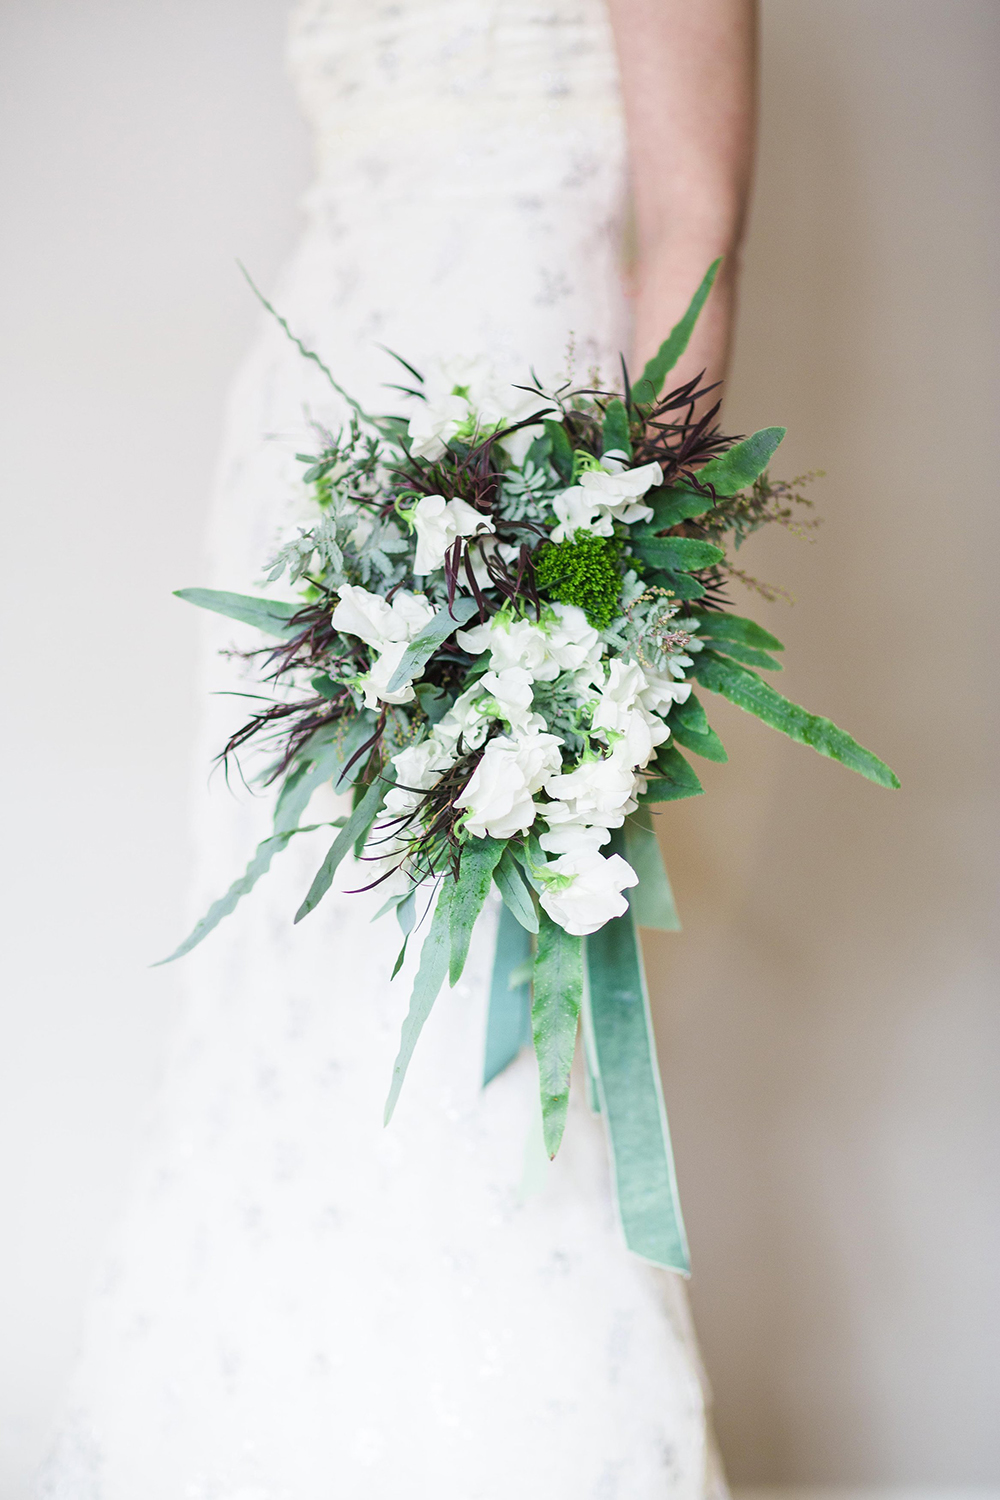 Cascading bridal bouquet with white Japanese sweet pea, agonis, feather acacia, Blue Star fern and green trachelium, accented with vintage grosgrain and velvet ribbons.  Photo by Leah Barry Photograpy, flowers by Floral Verde LLC Cincinnati, Ohio.